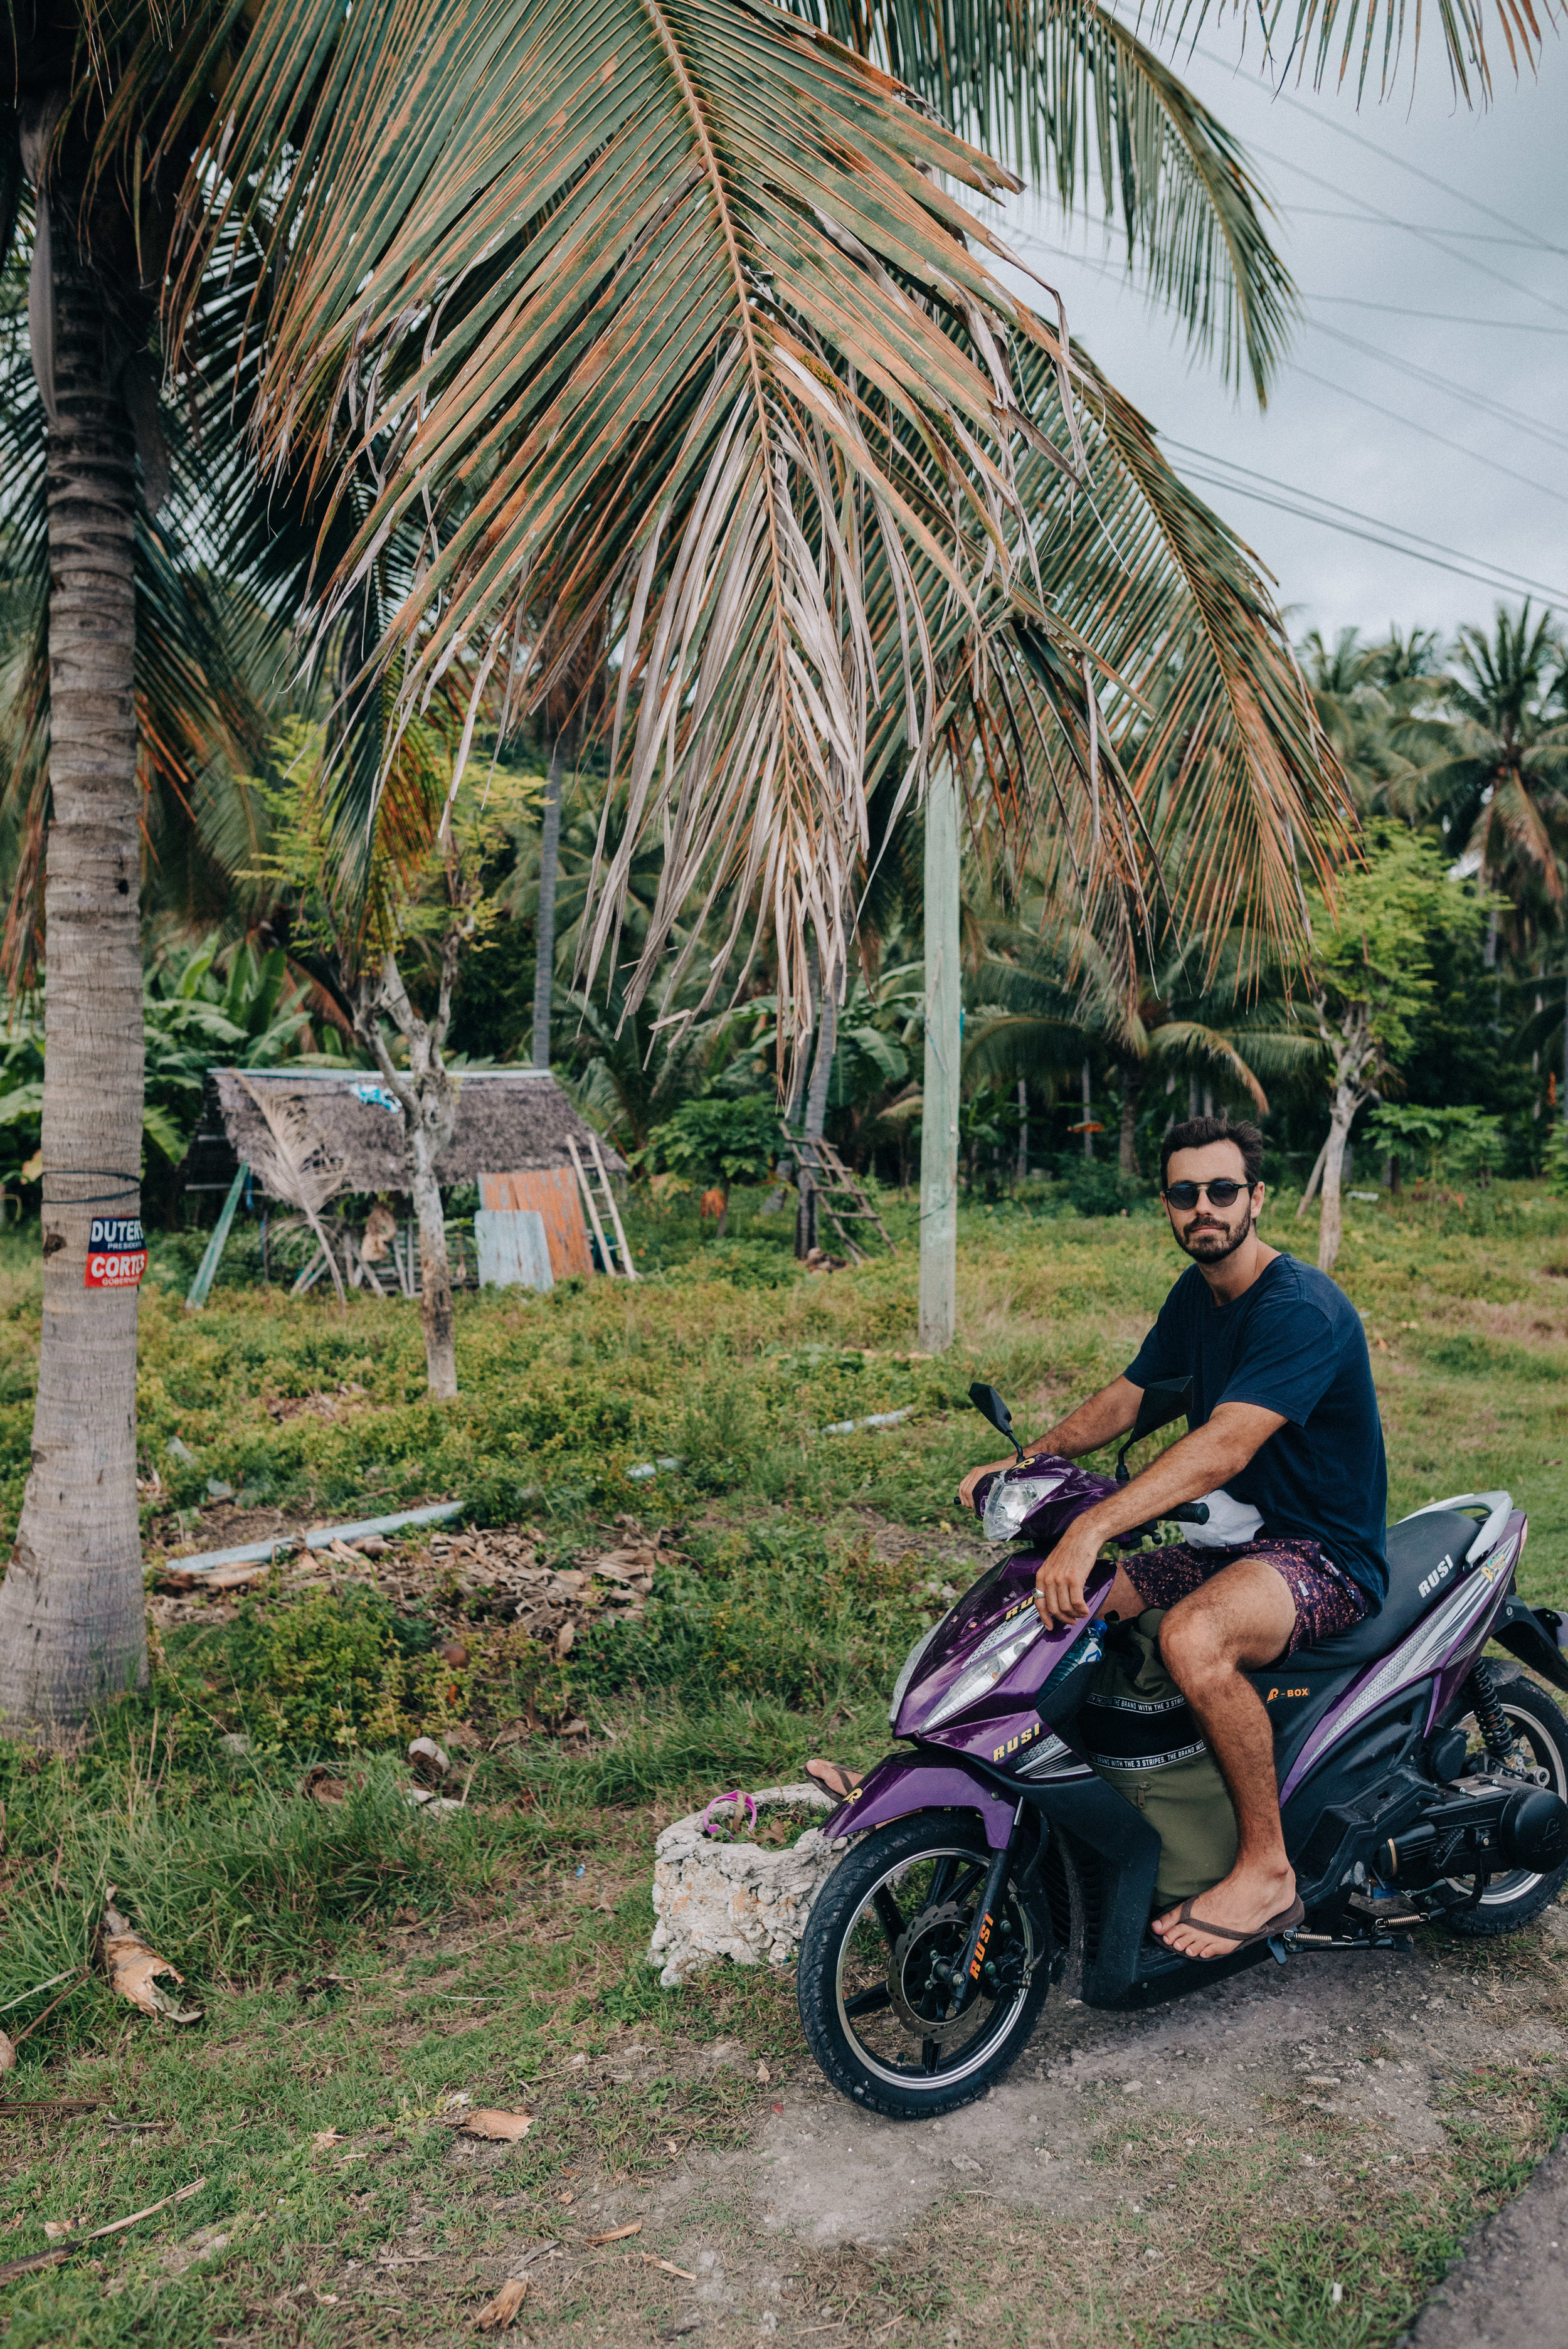 Best way to see the Phillipines, by bike